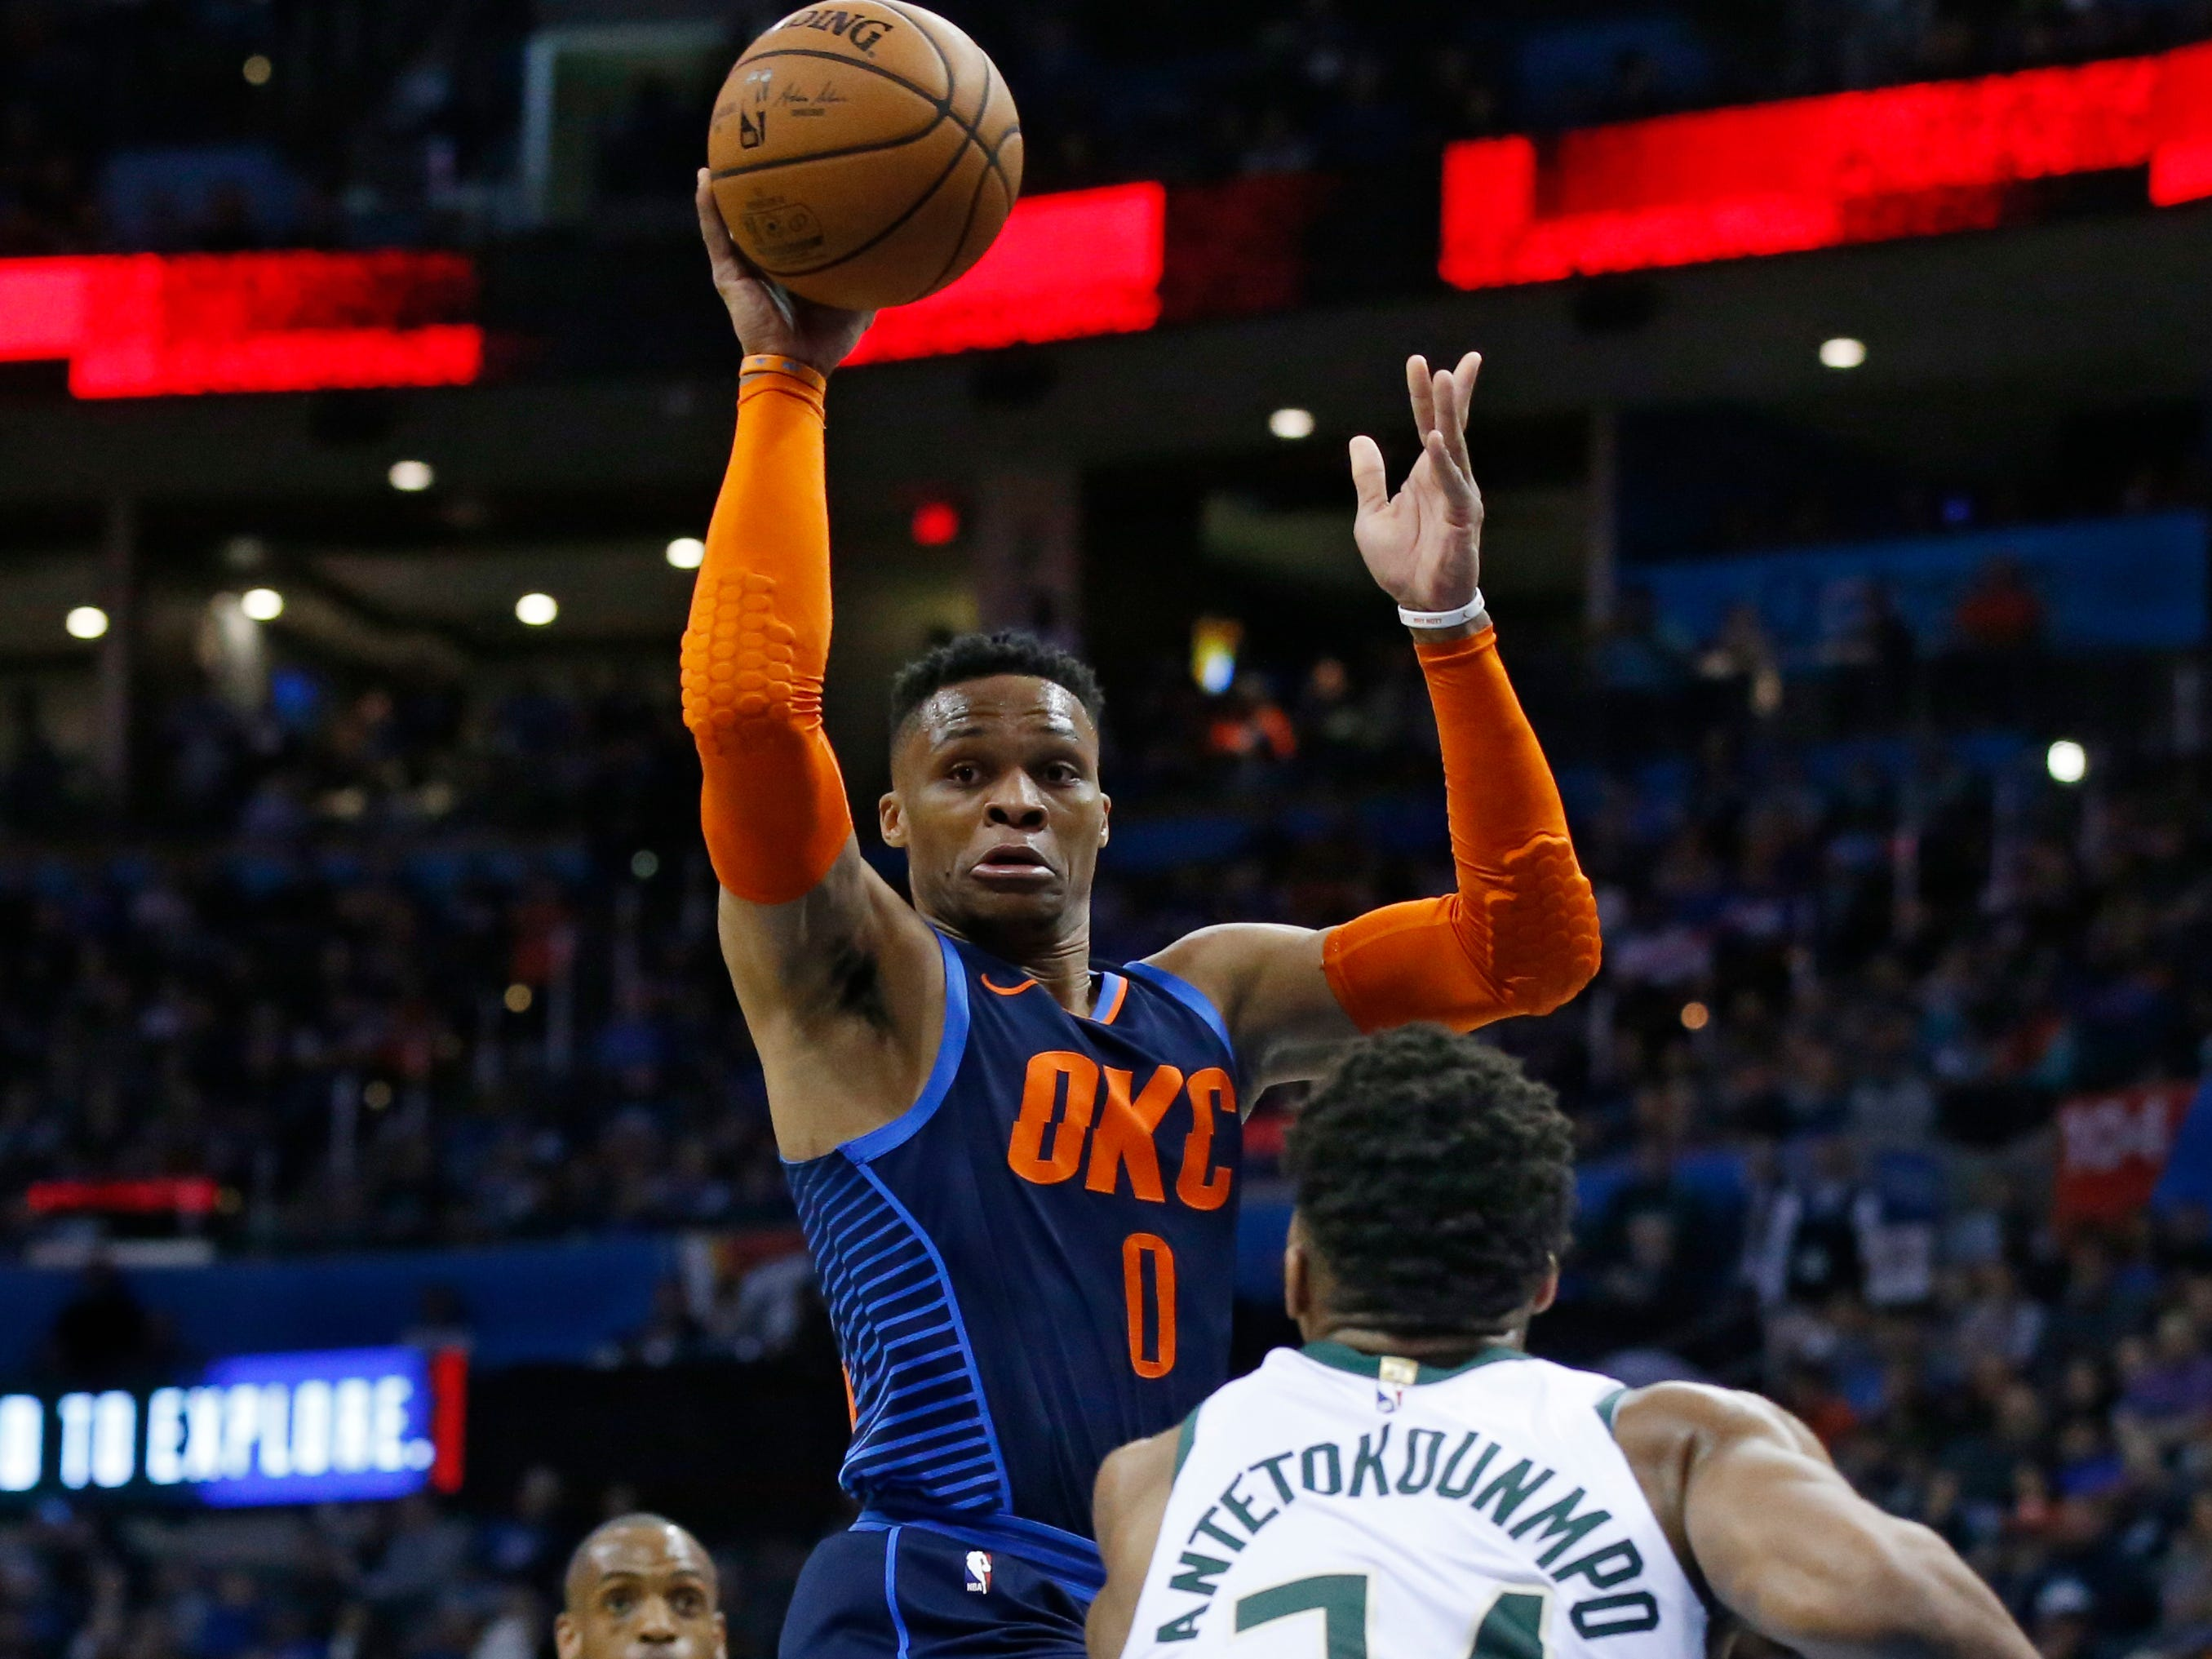 65. Russell Westbrook, Thunder (Jan. 27): 13 points, 13 rebounds, 11 assists in 118-112 win over Bucks (16th of season).